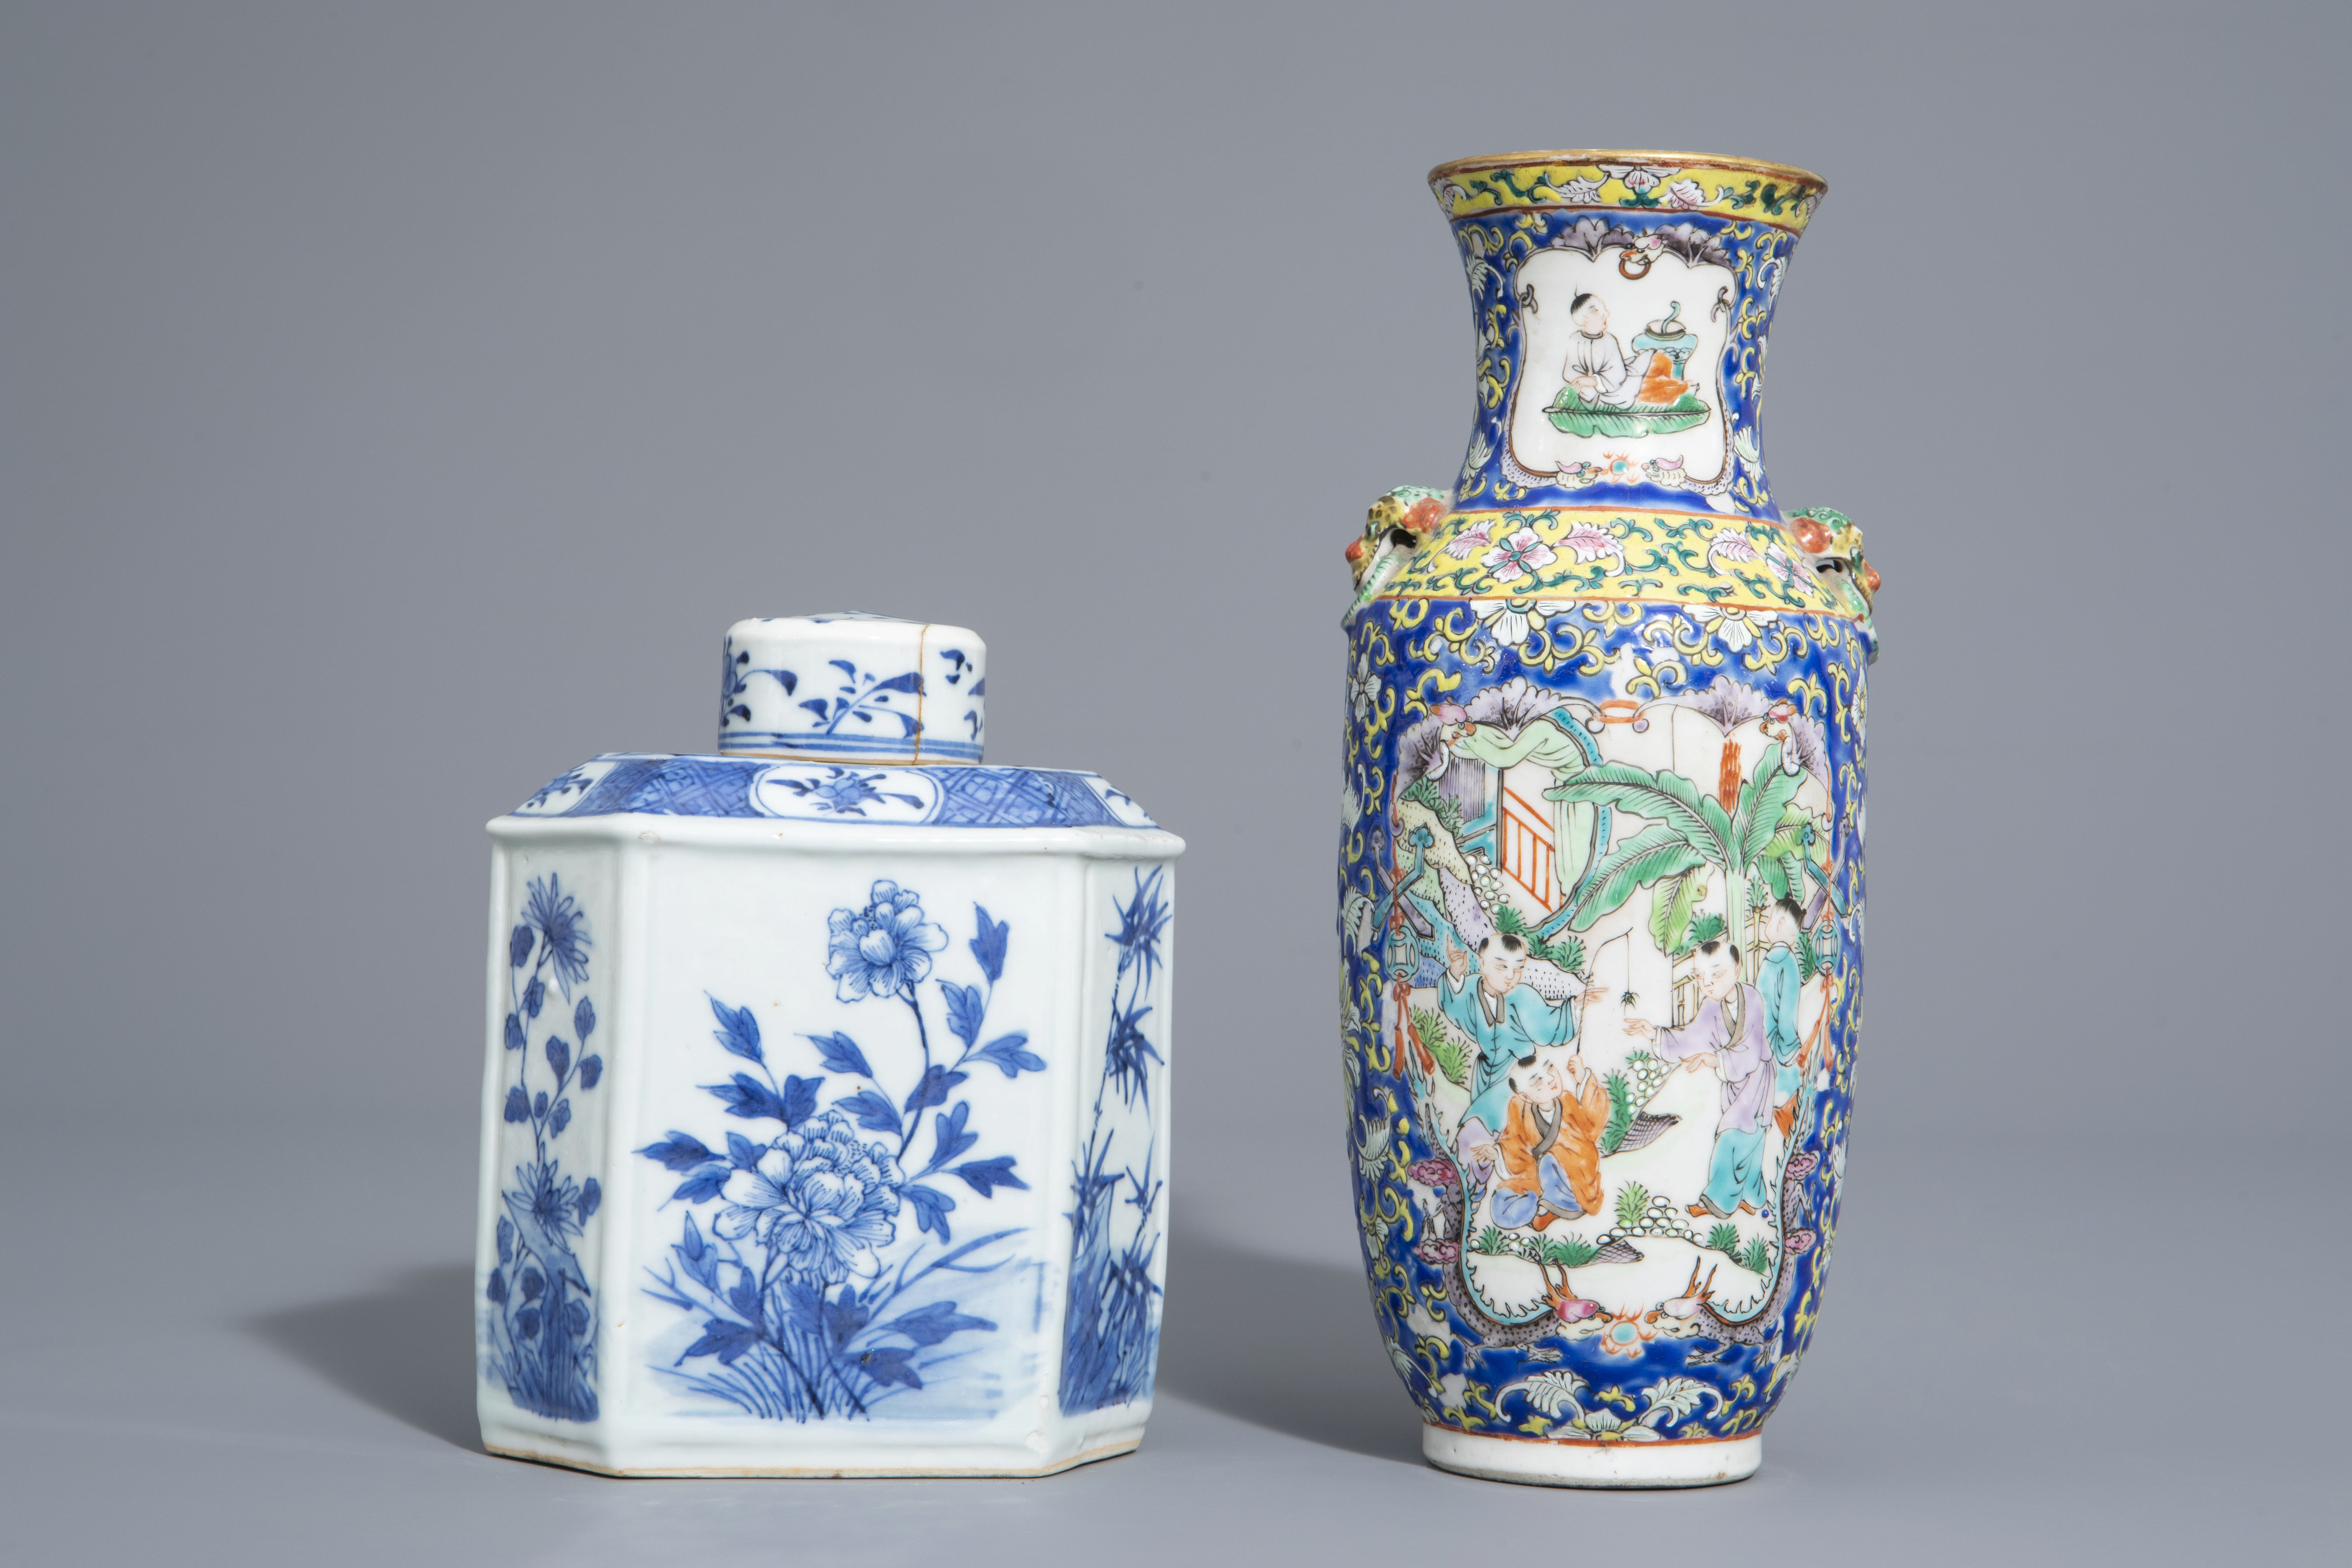 A varied collection of Chinese blue and white and famille rose porcelain, 19th/20th C. - Image 4 of 15